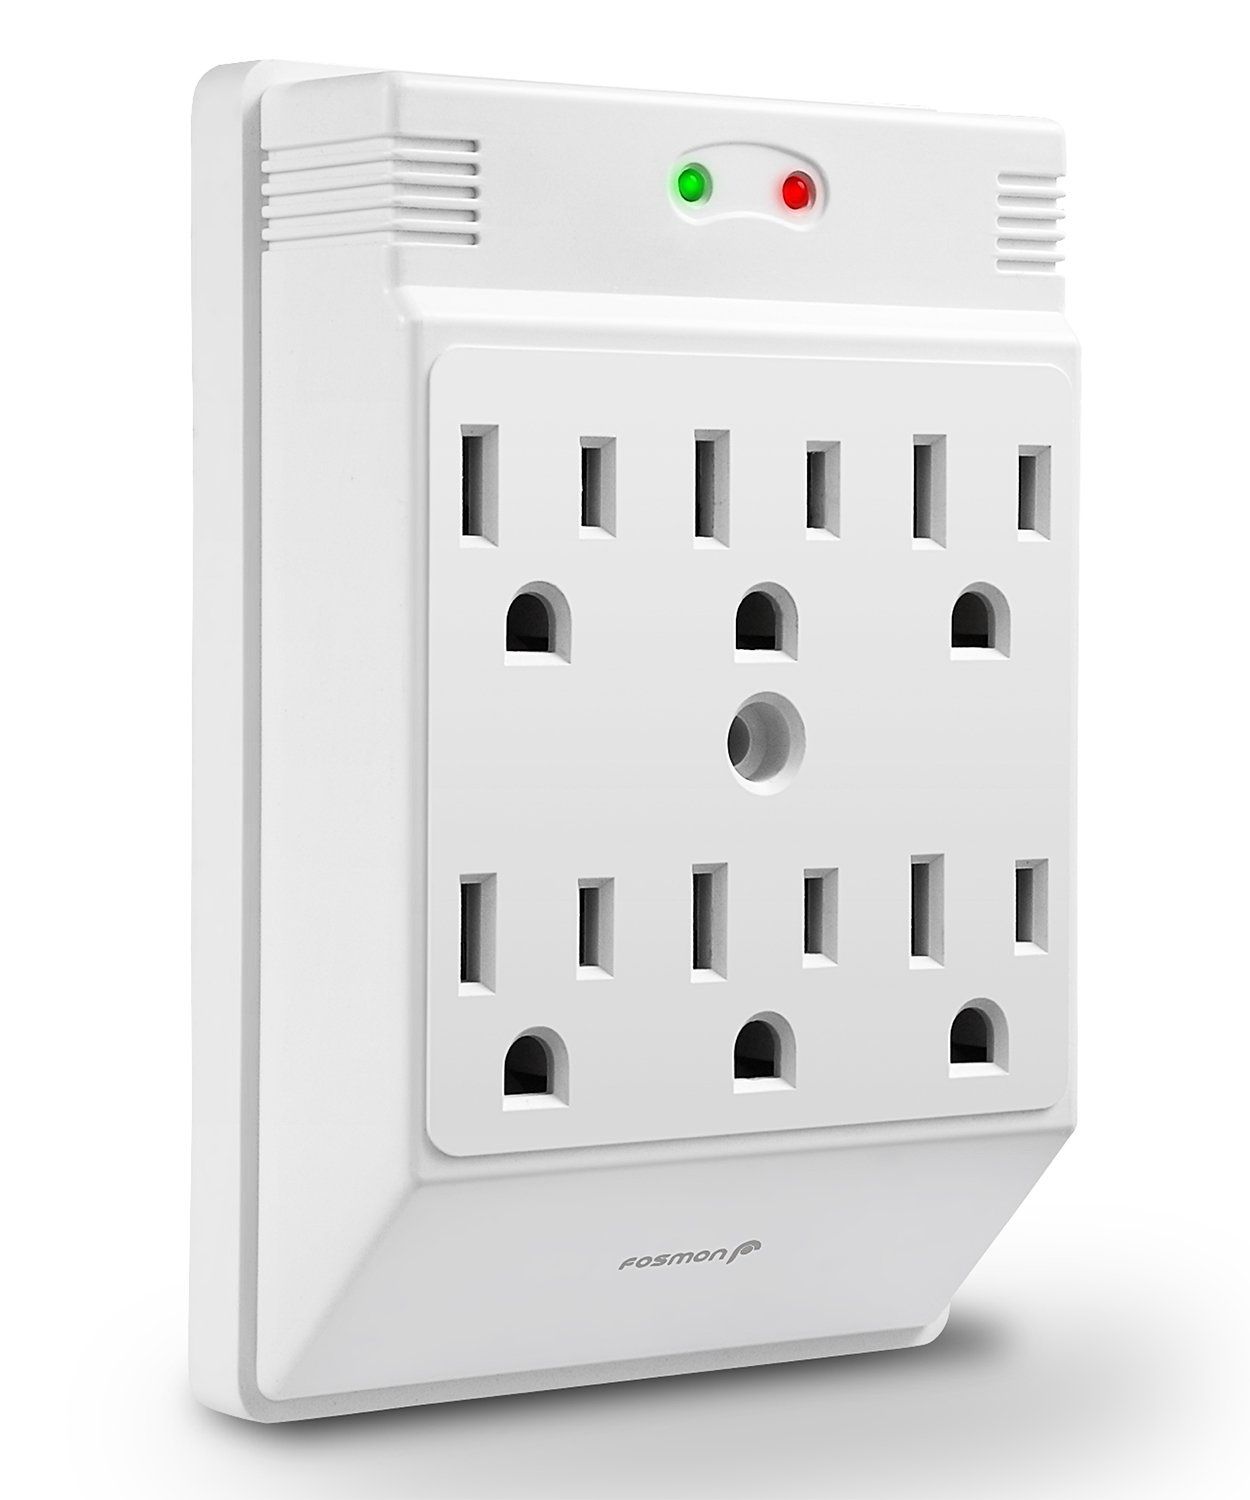 2 Pack Fosmon ETL Listed 700 Joules 15A 125VAC 60Hz 1875Watts Wall Outlet Adapter 6 Outlet Wall Mount Surge Protector White C-10688-2PACK